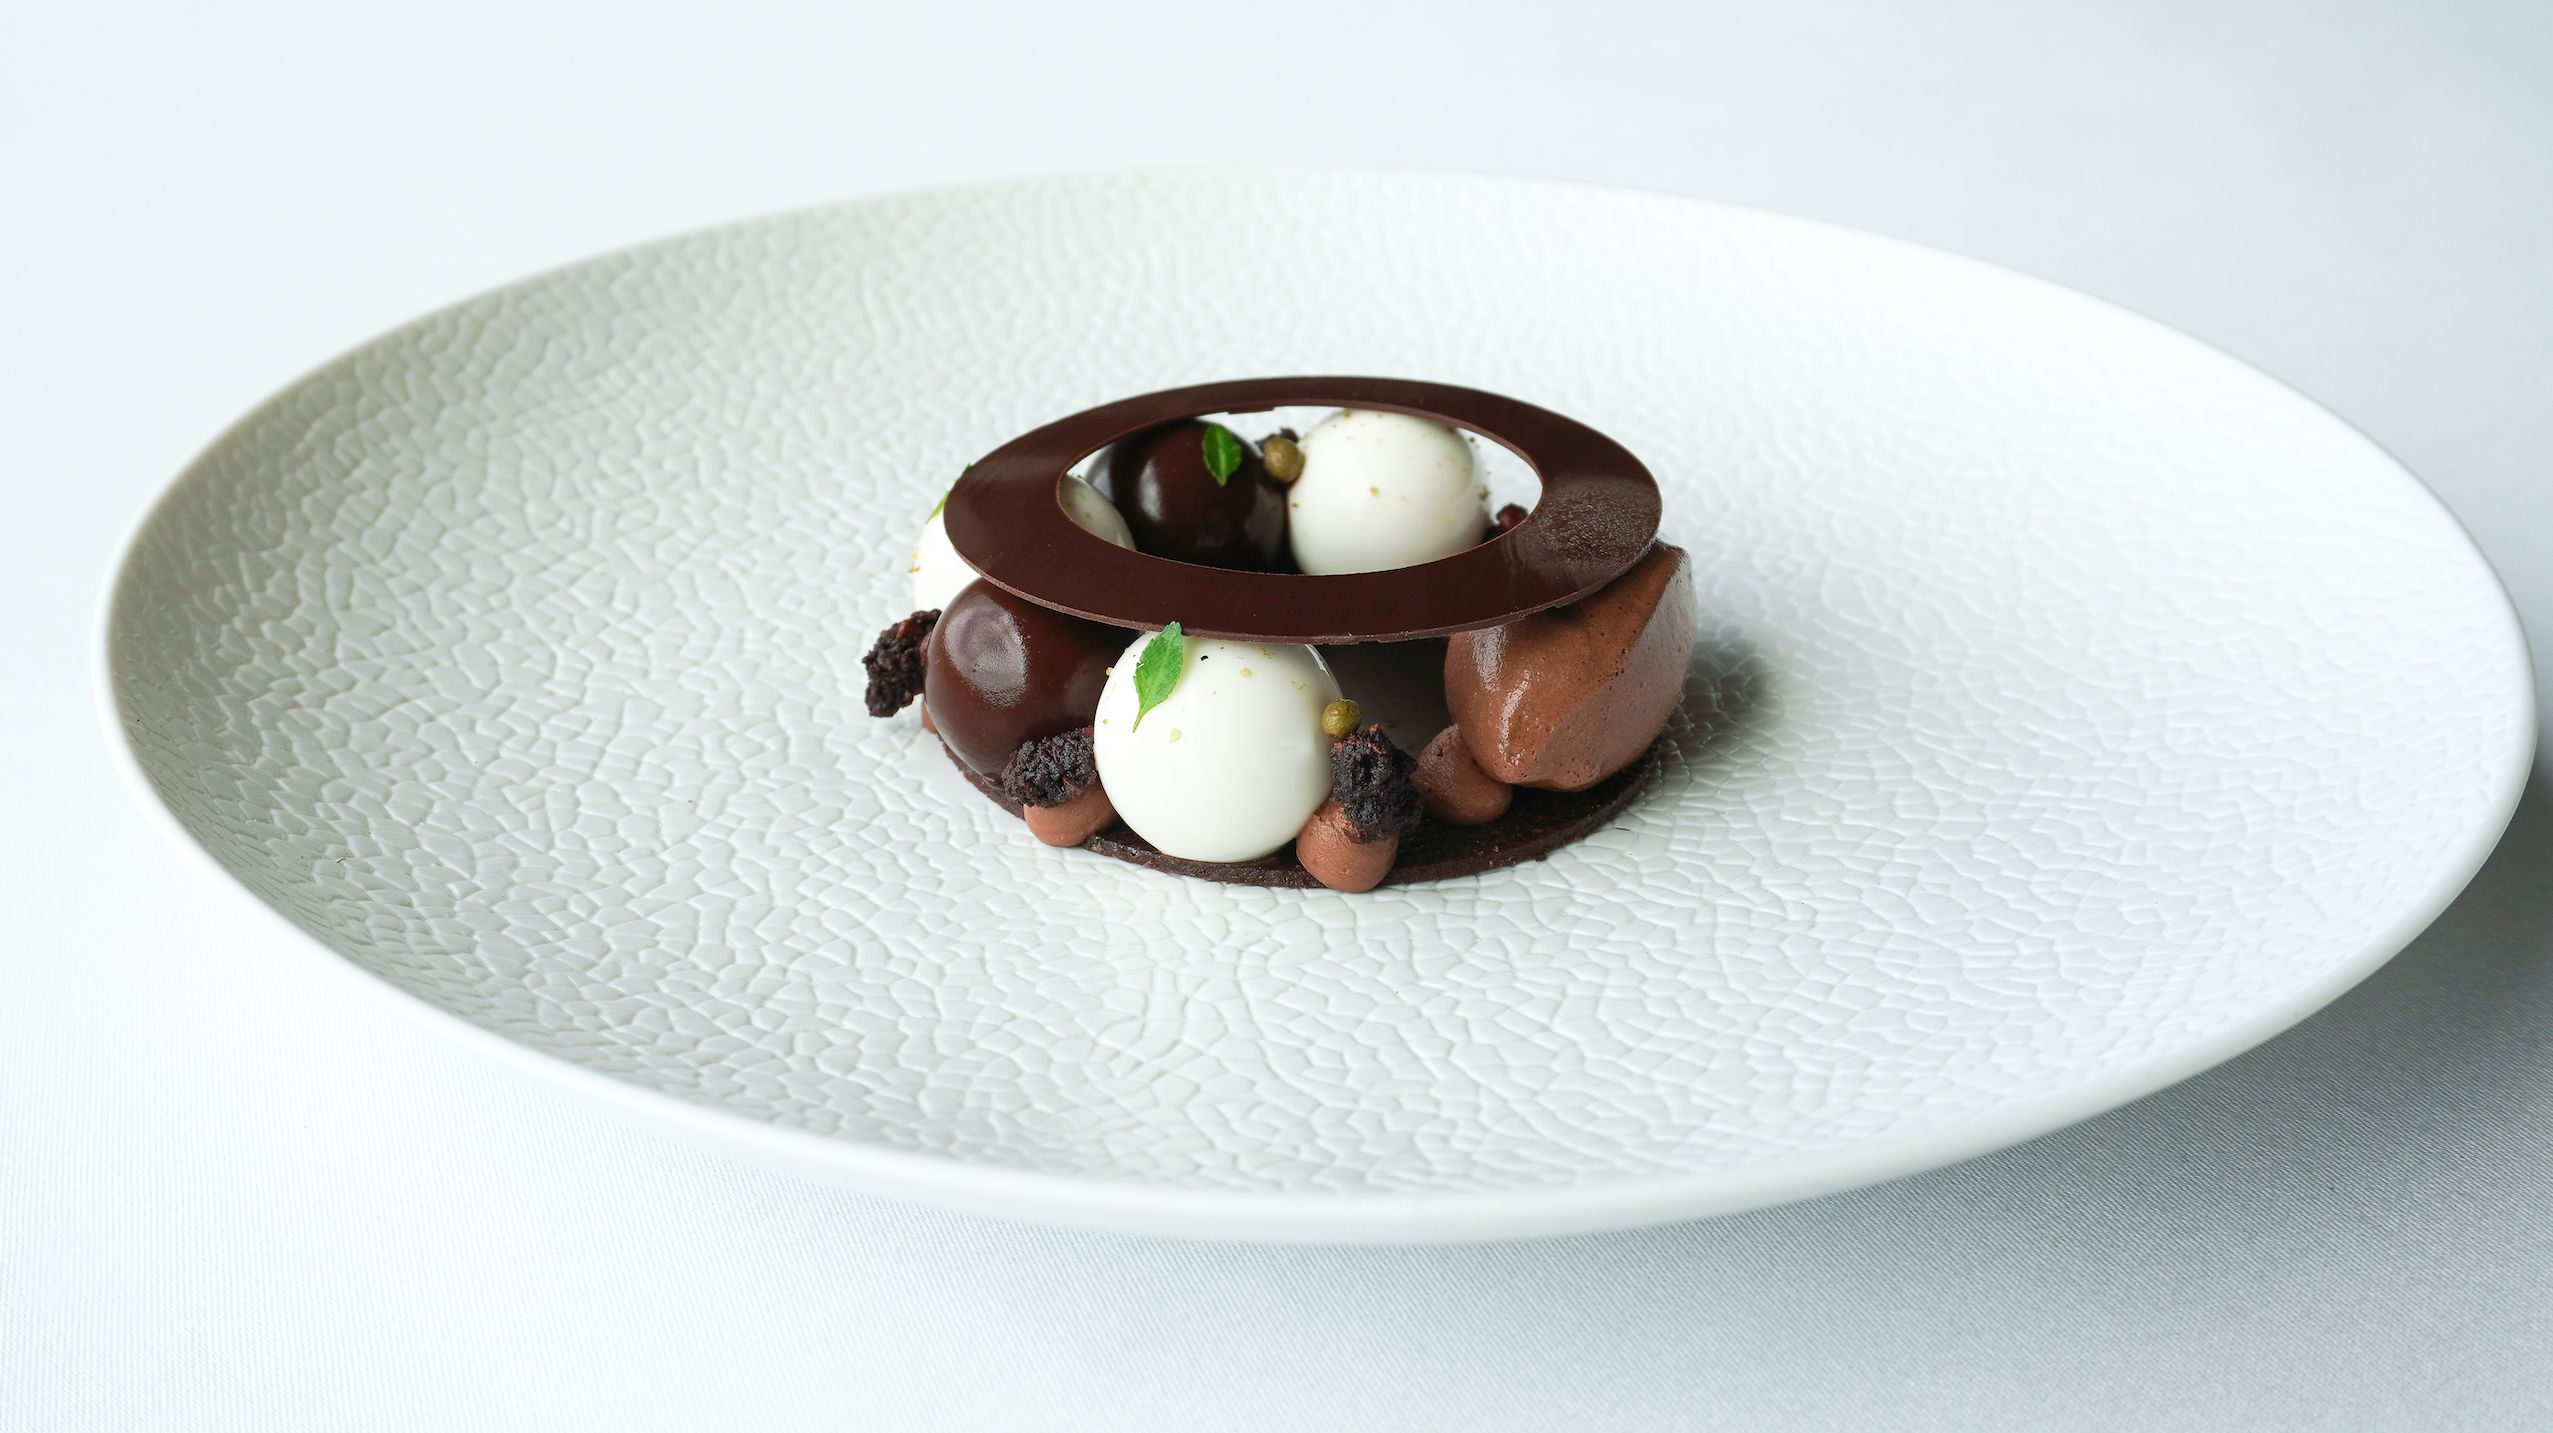 chocolate desert on round white plate